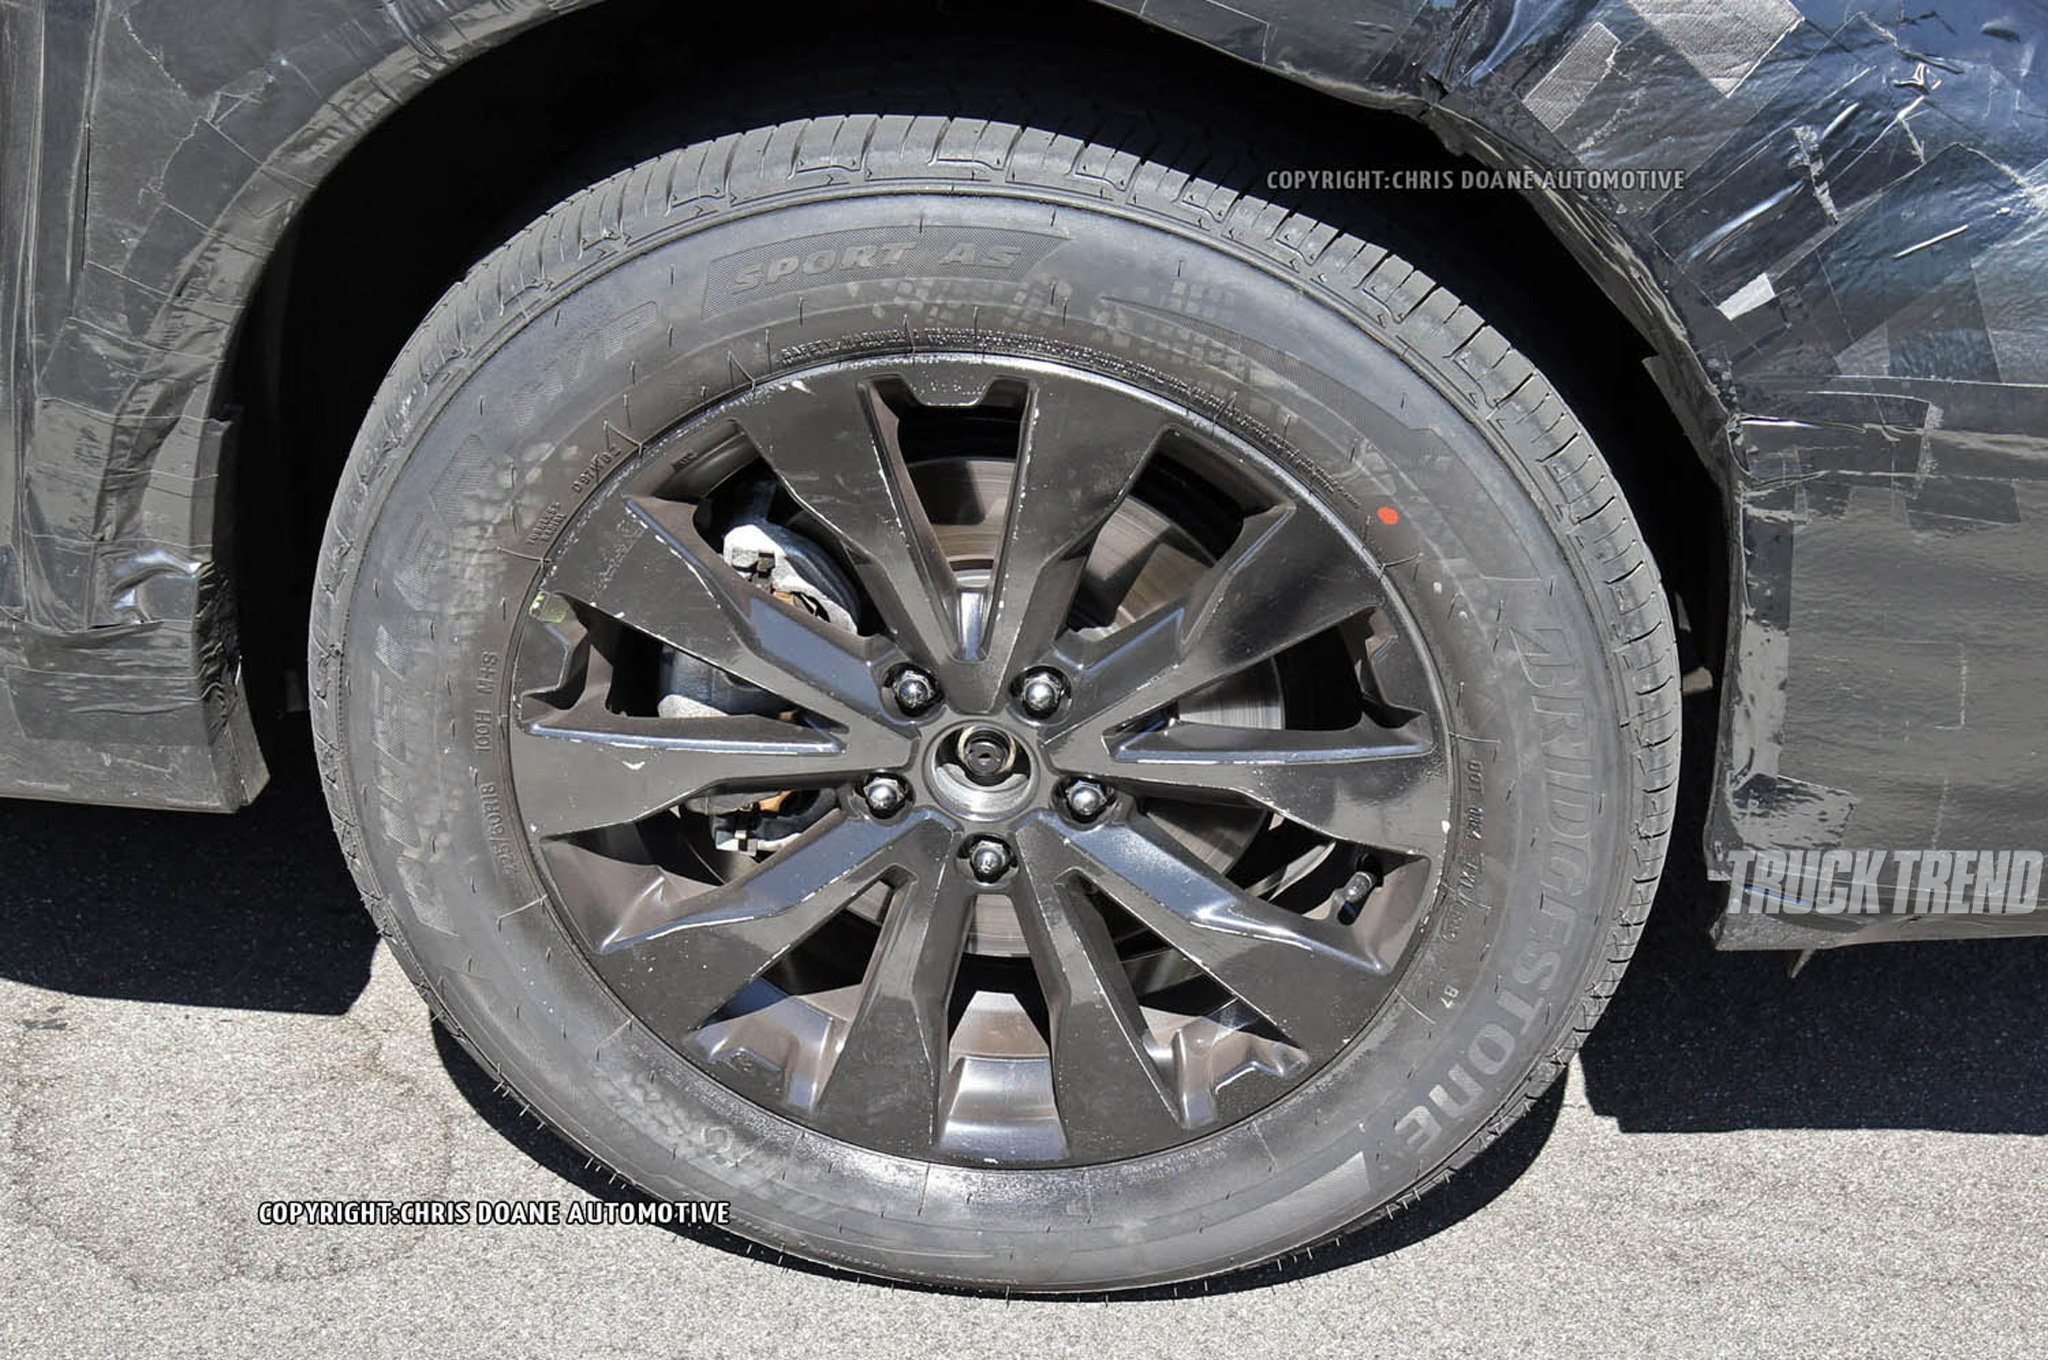 Toyota Dealership Asheville subaru outback does 2015 subaru have a spare tire models and all about ...